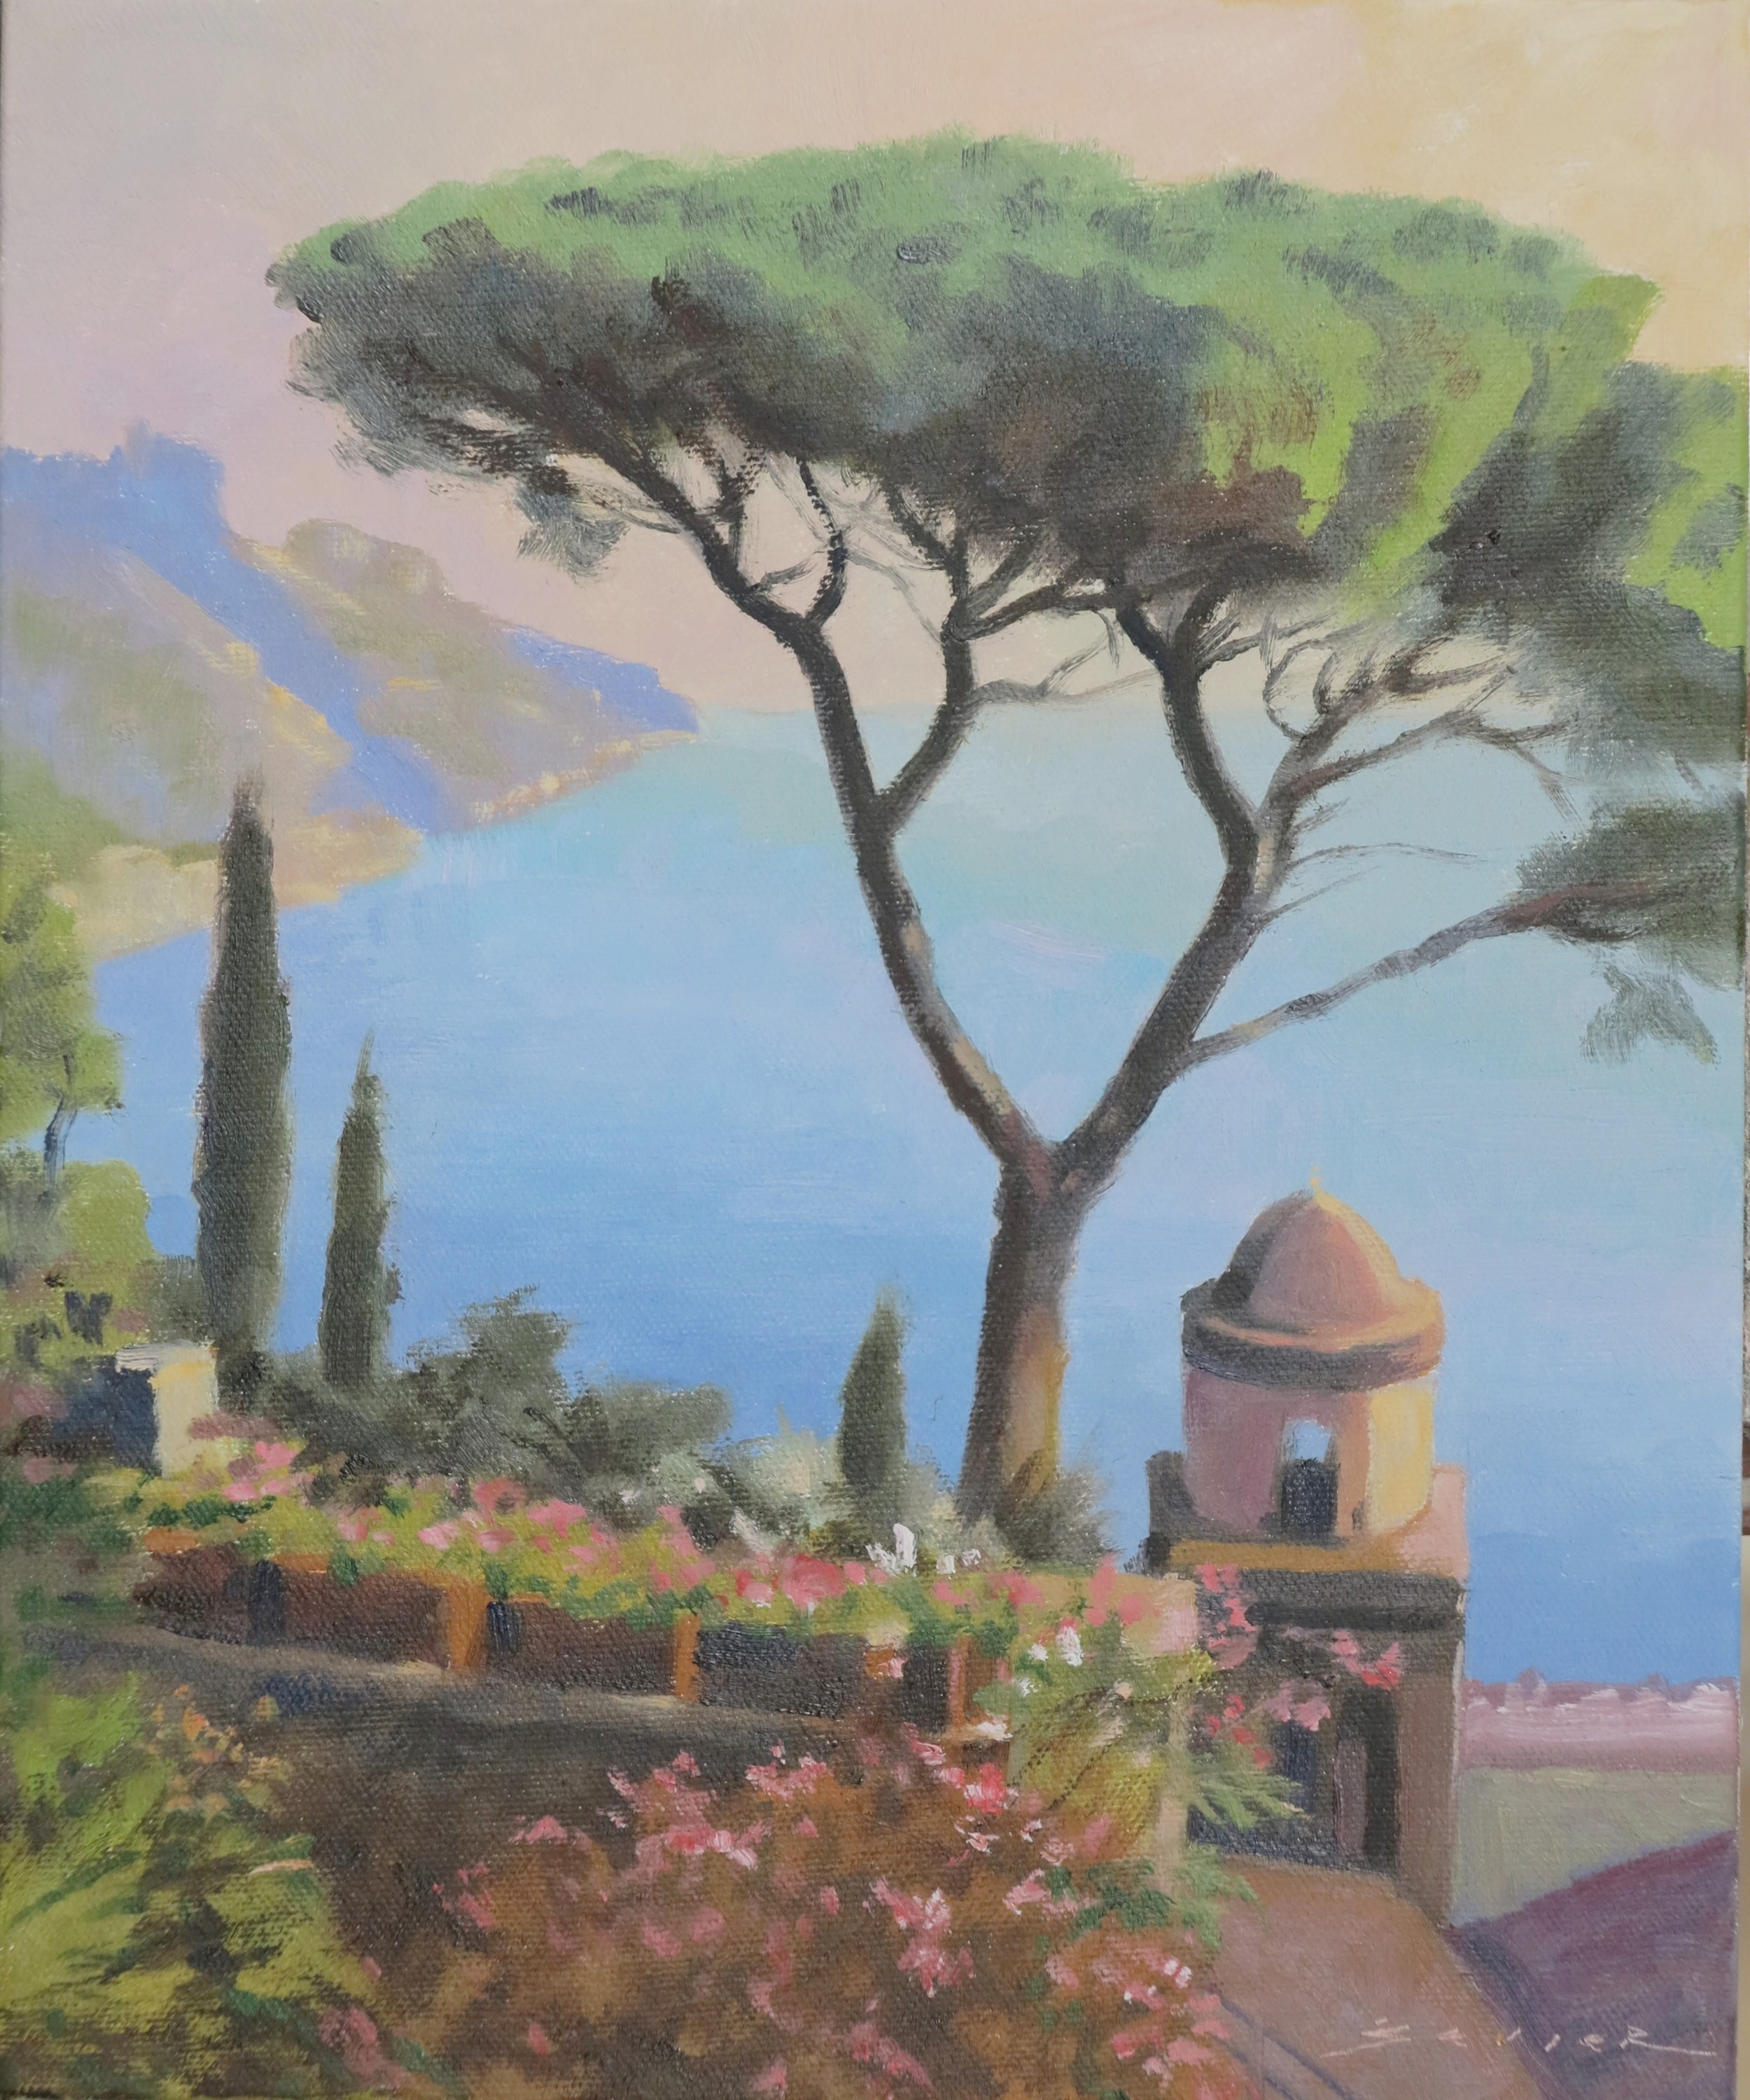 View from Ravello/Italy, 12 x 10, oil